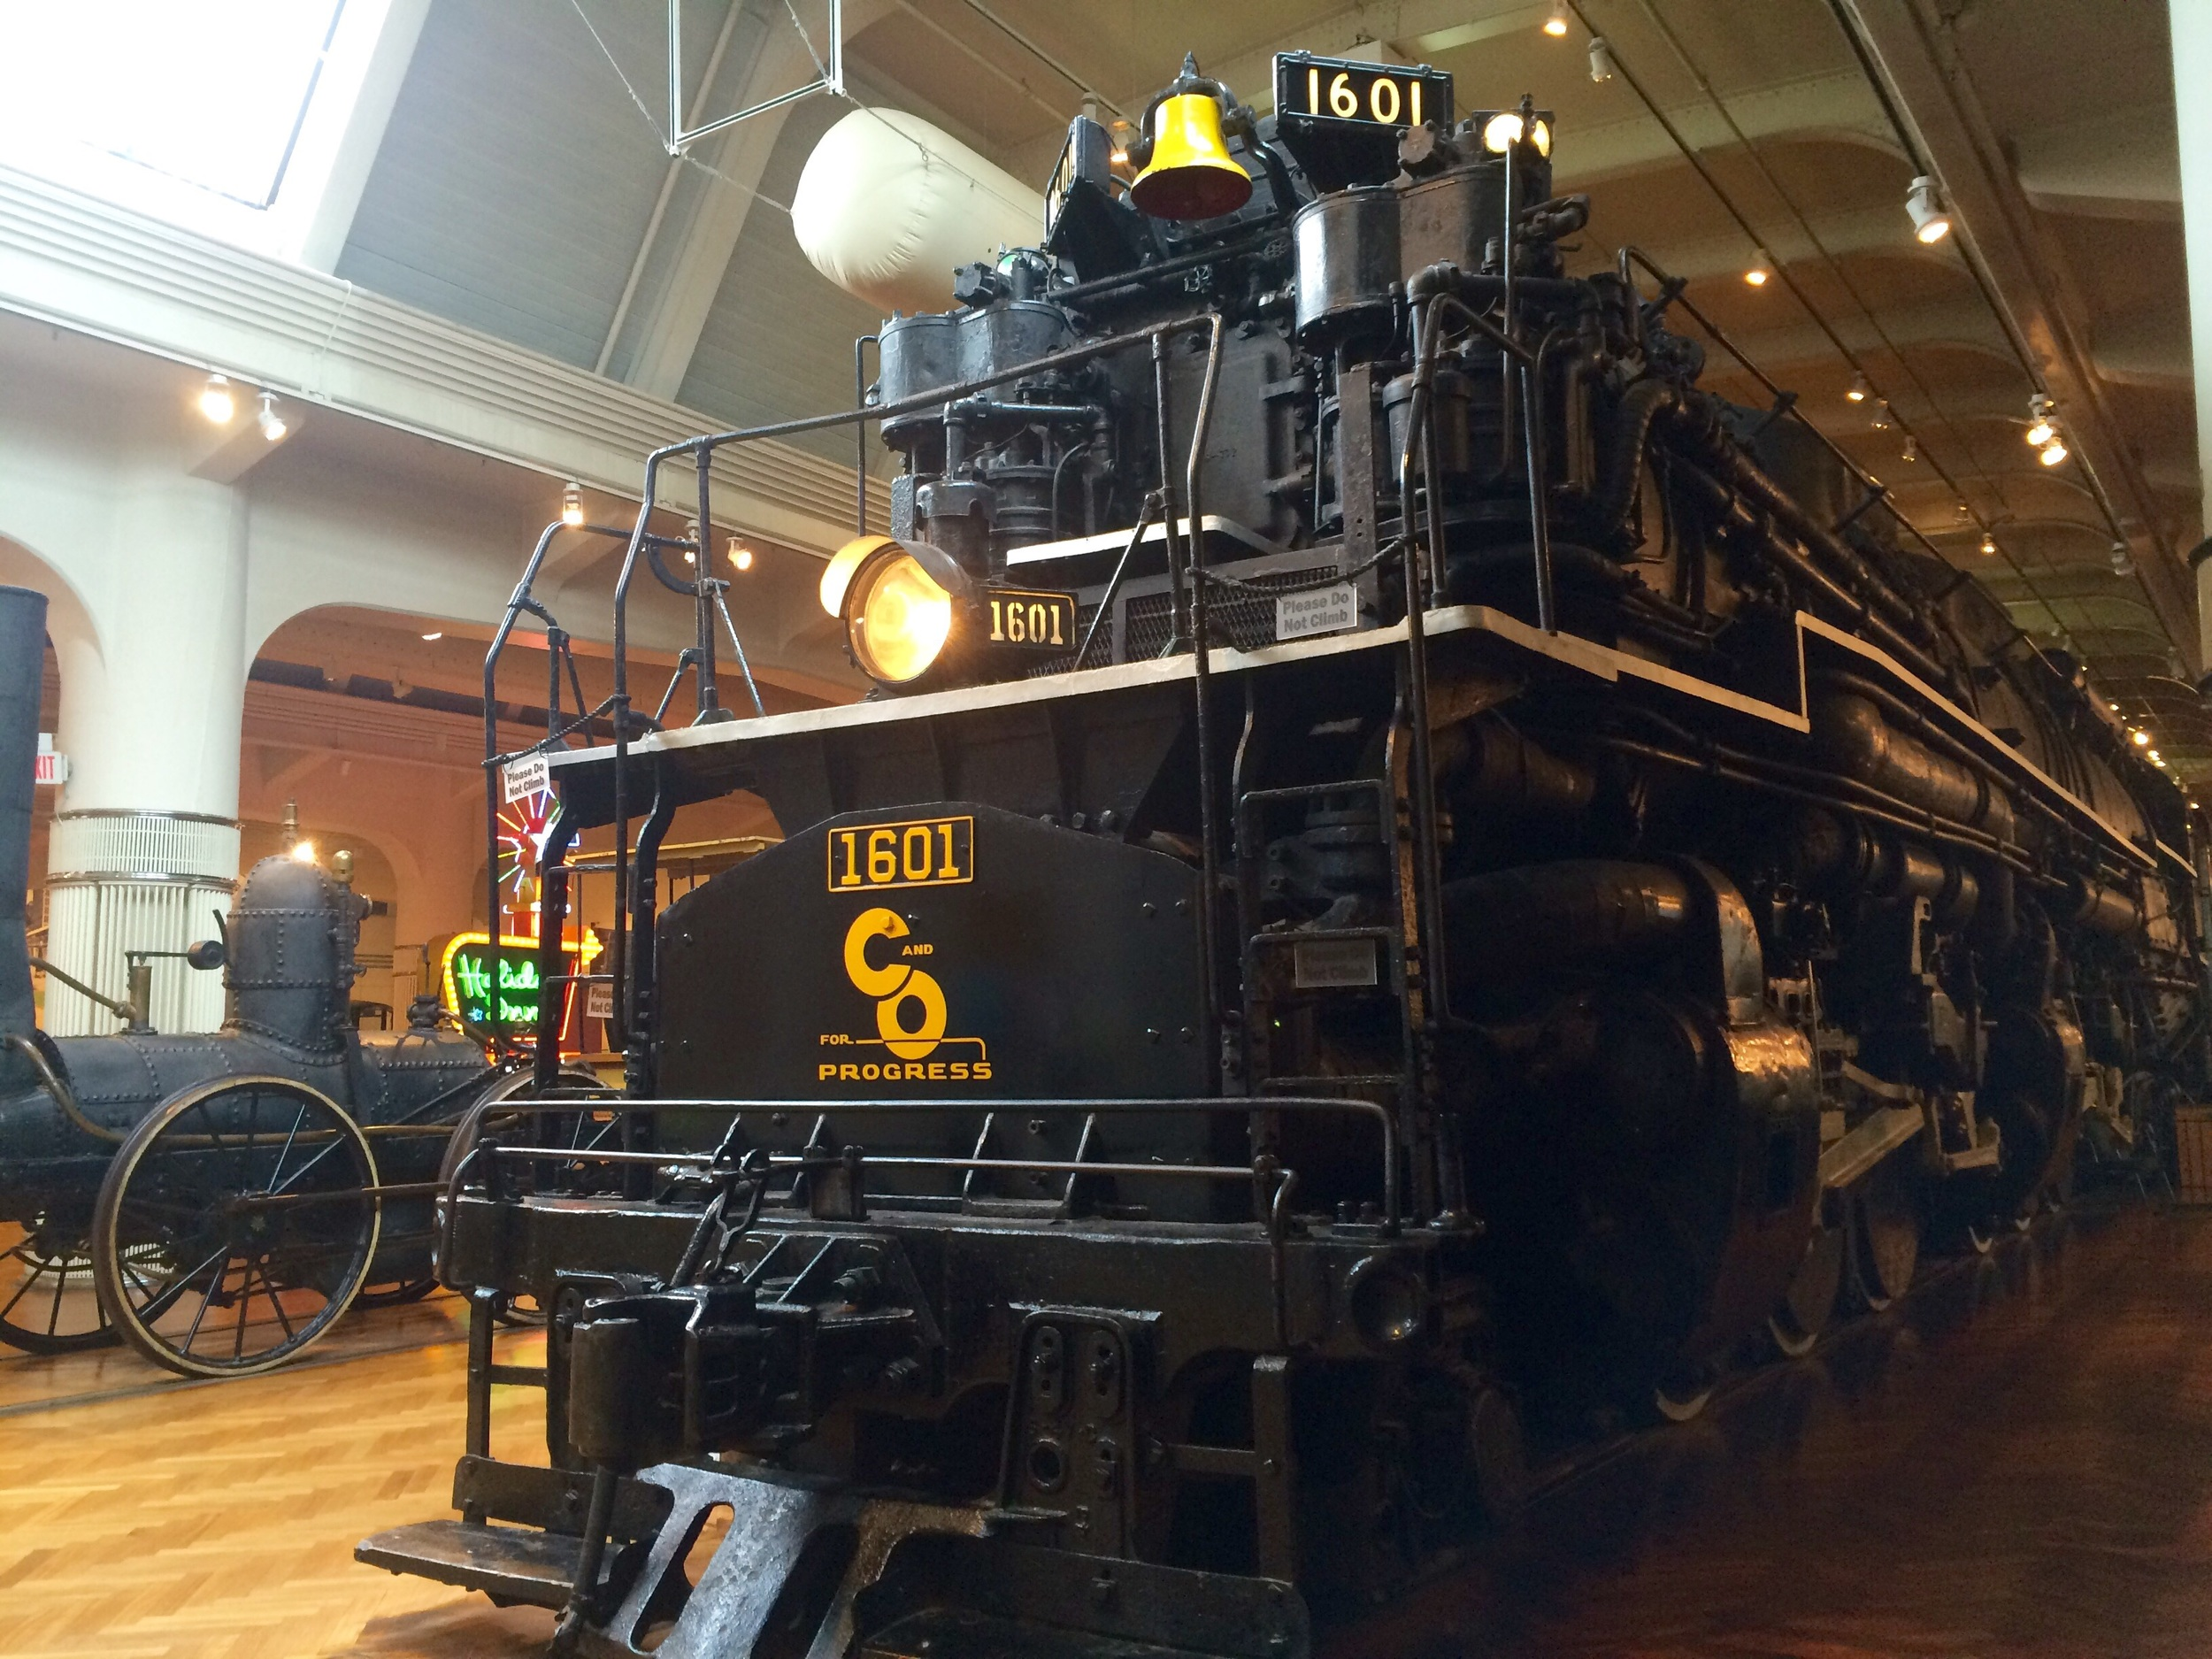 Allegheny locomotive